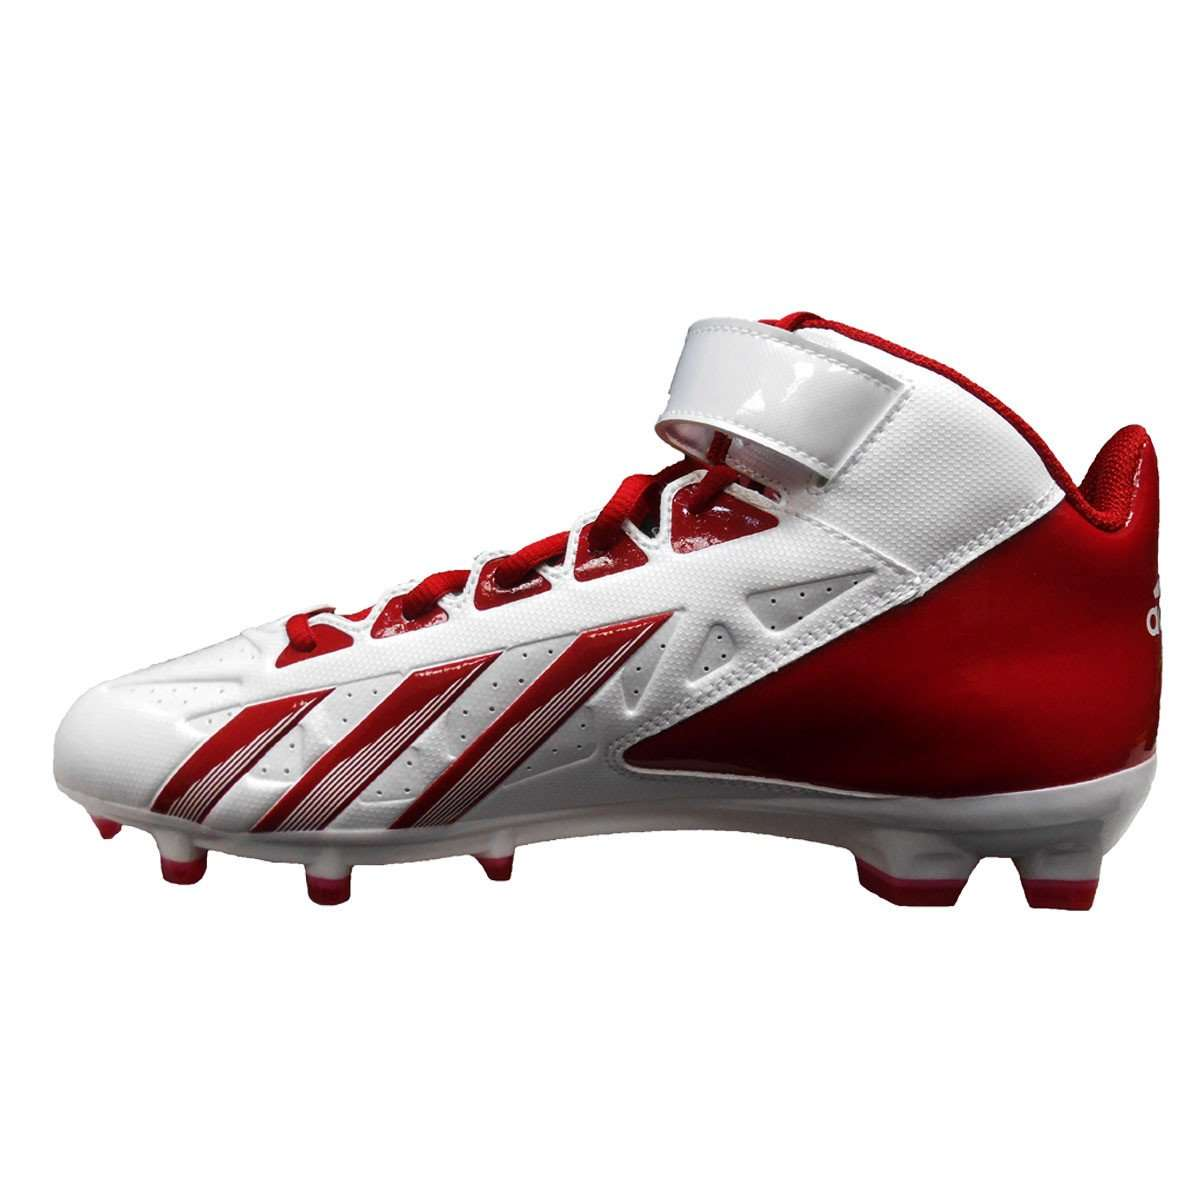 ed5471843 adidas filthy quick football cleats Sale